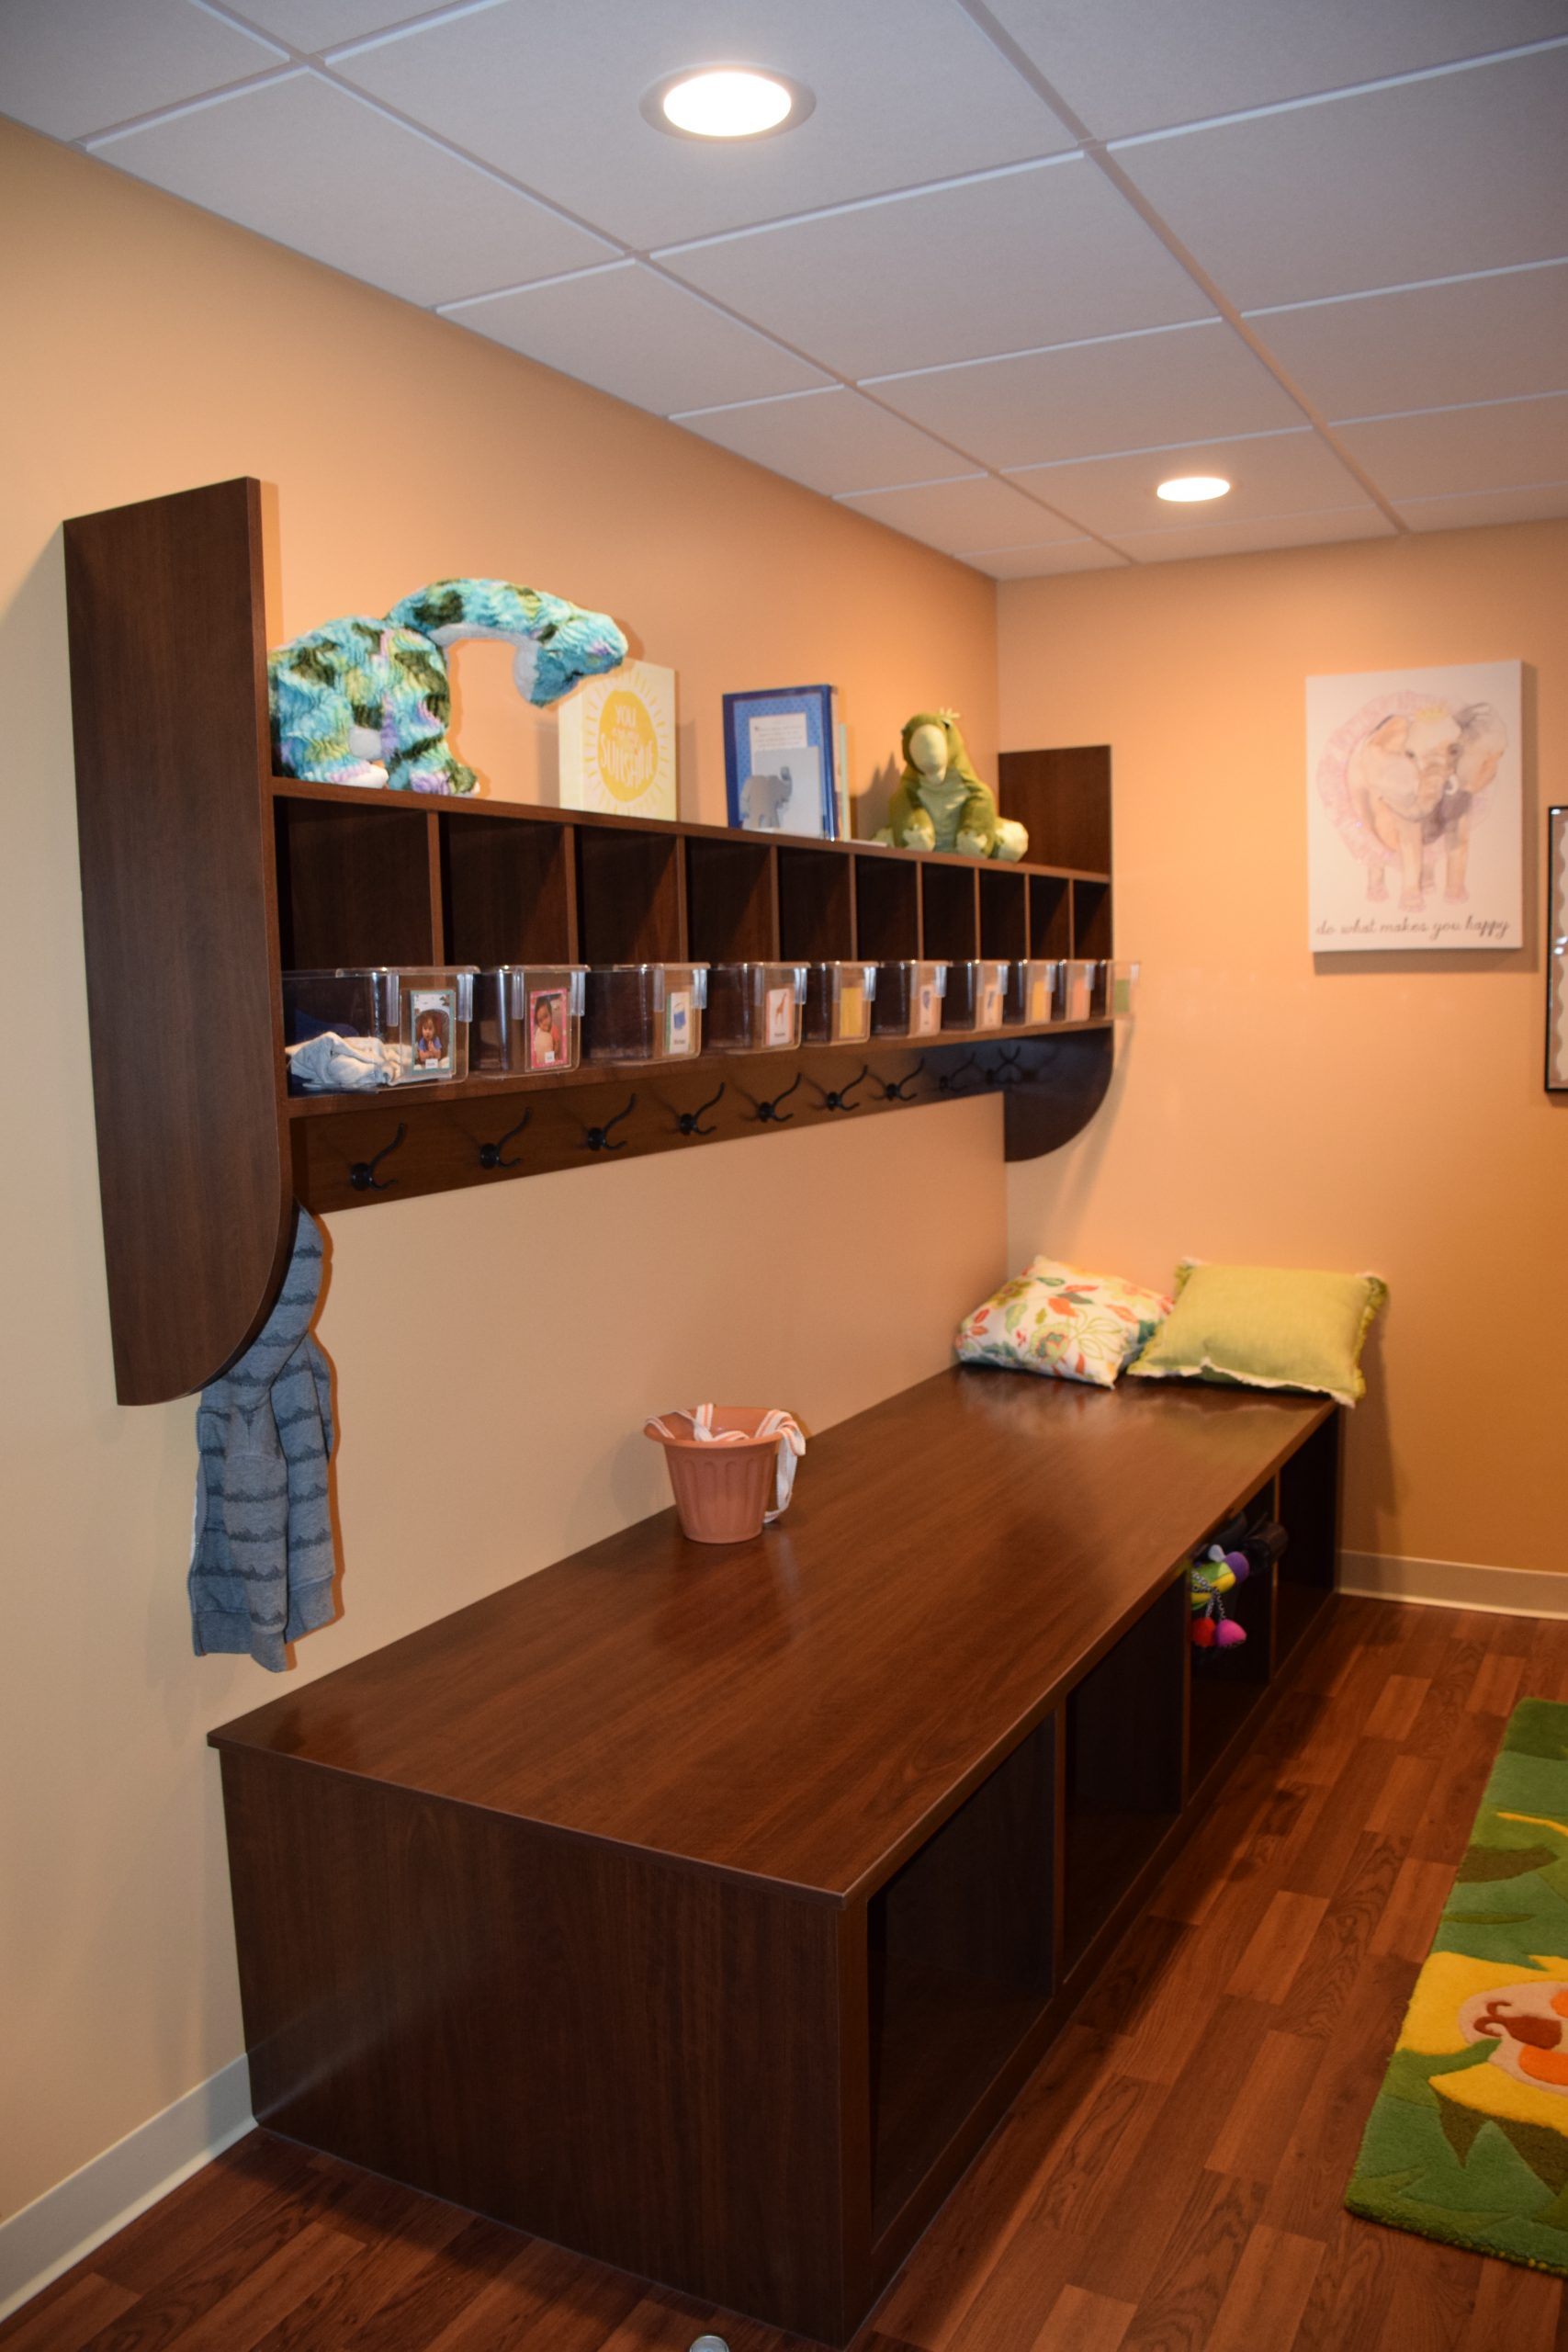 Custom Casework at a pediatric center including mounted cubbies and bench storage